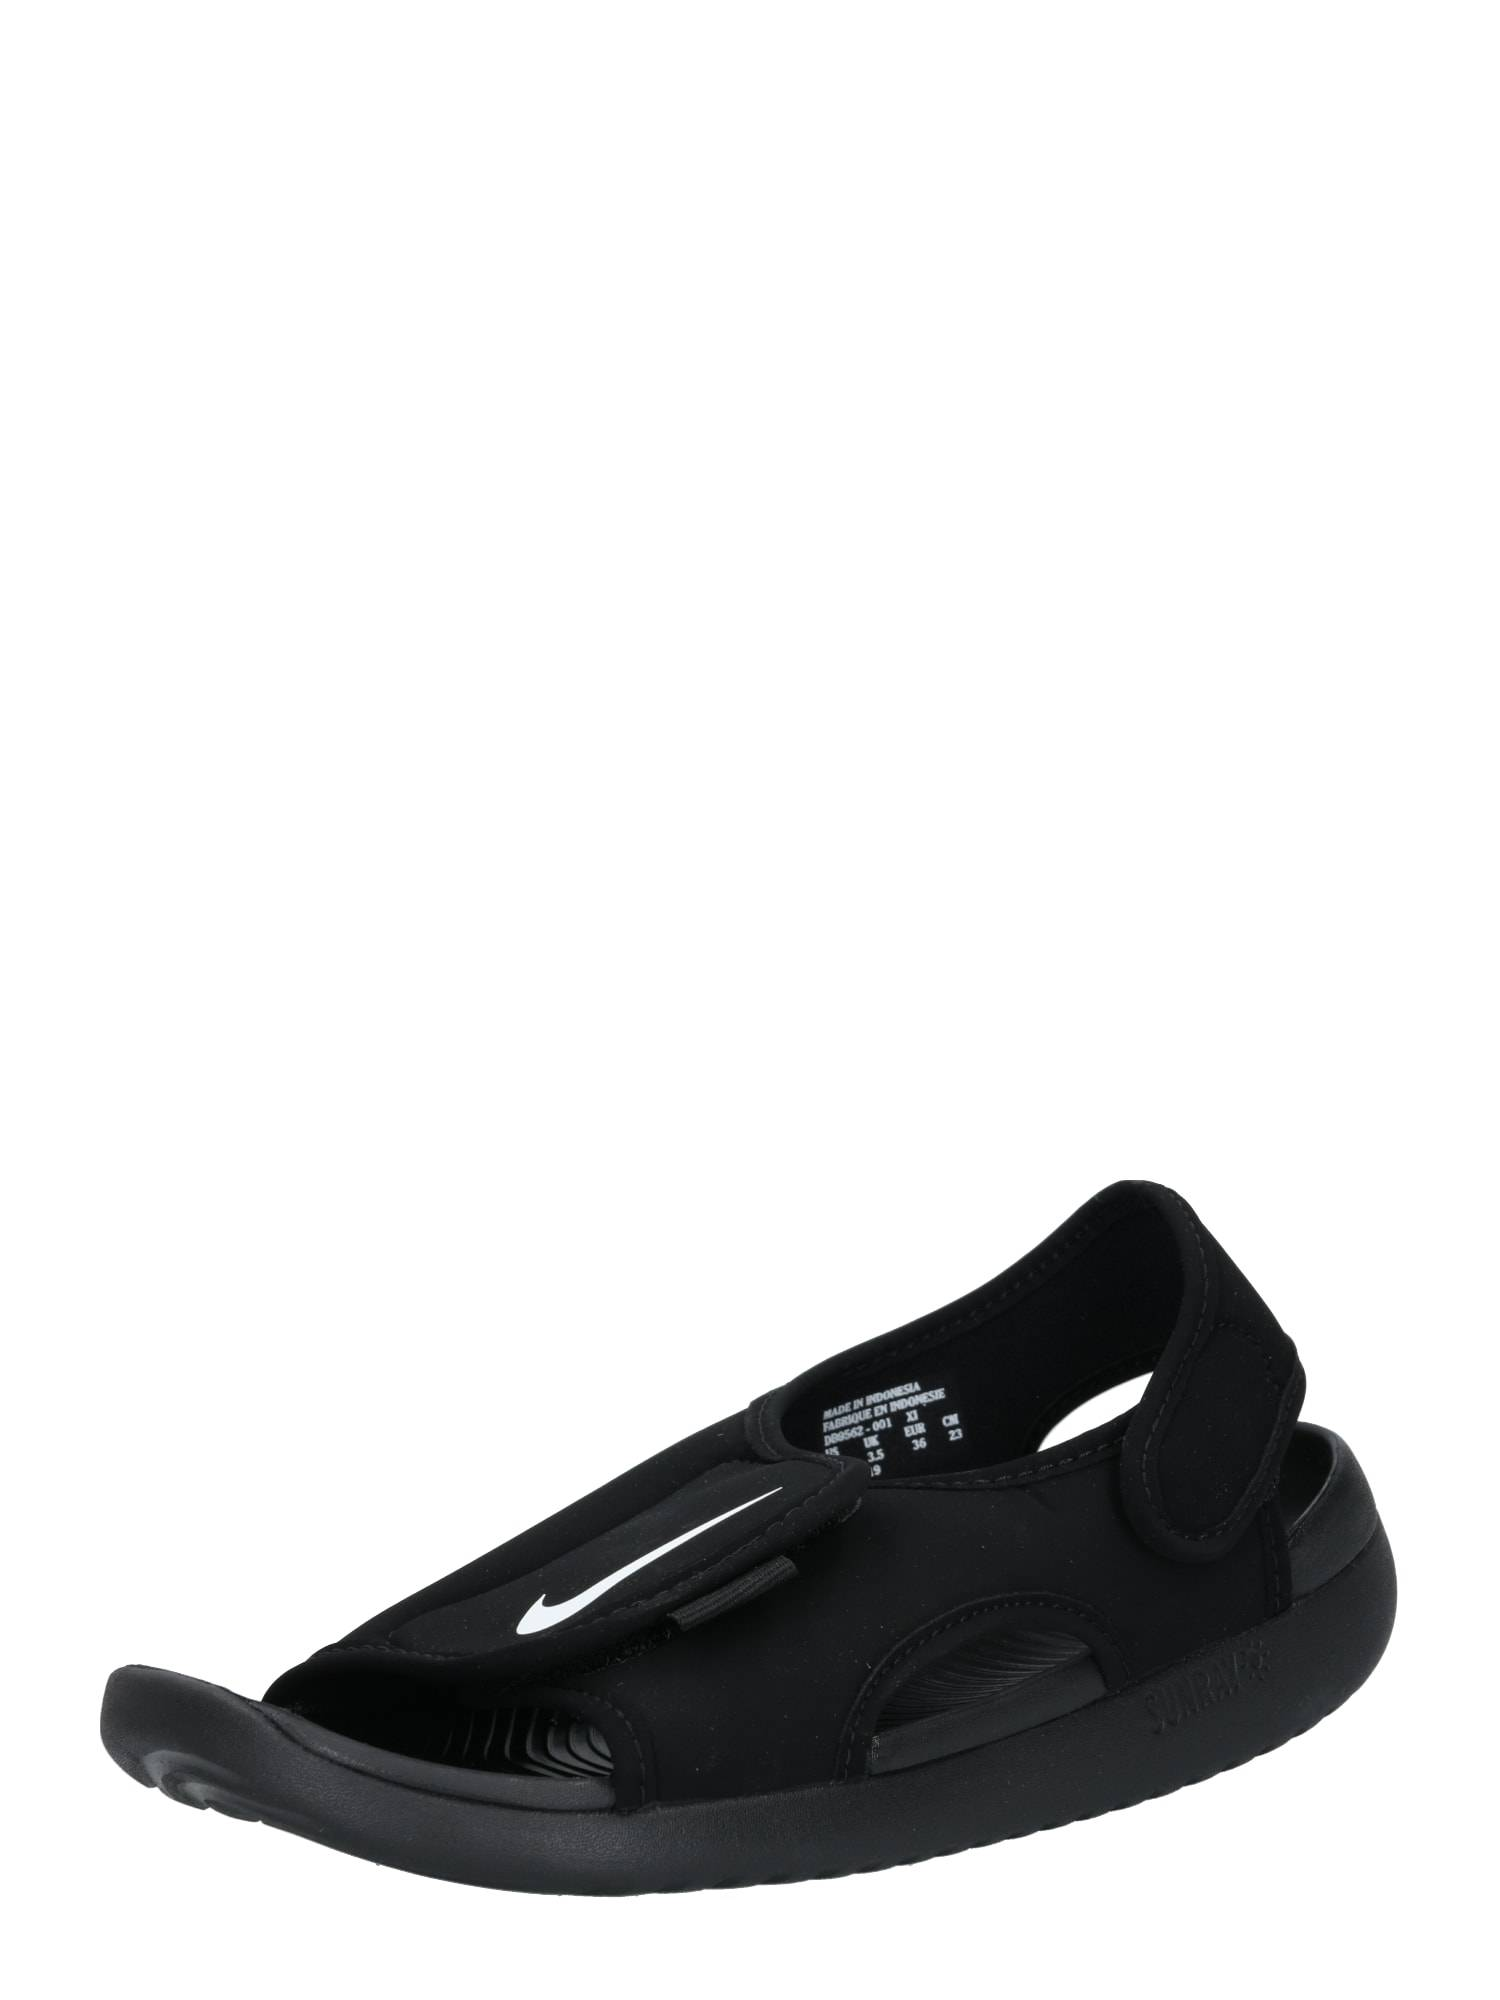 Nike Sportswear Chaussures ouvertes 'SUNRAY ADJUST 5 V2 (GS/PS)'  - Noir - Taille: 7Y - boy